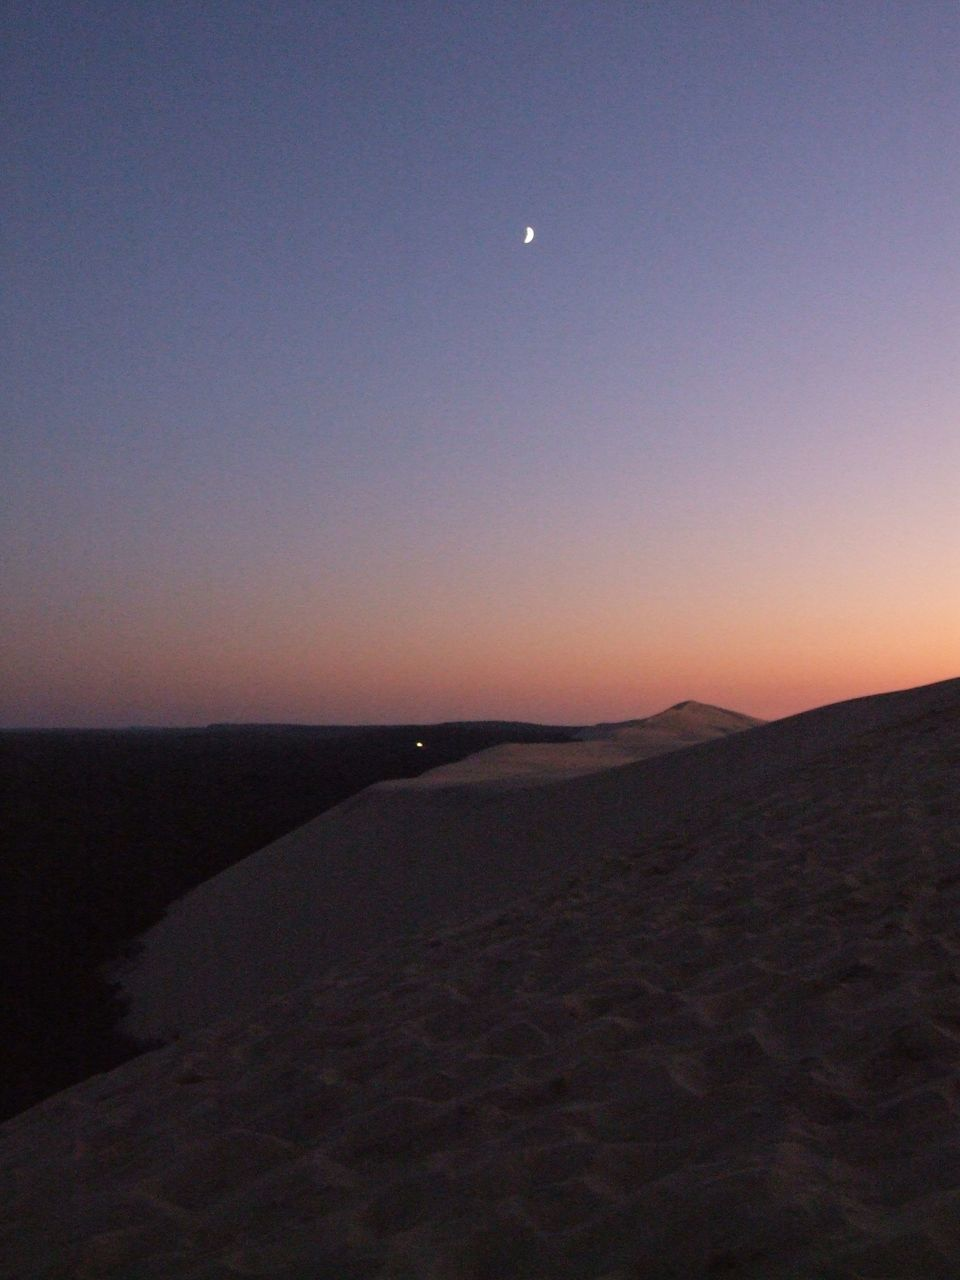 moon, nature, scenics, beauty in nature, tranquil scene, tranquility, landscape, clear sky, sky, night, dusk, sunset, outdoors, sand, astronomy, no people, desert, sand dune, space, crescent, sea, half moon, water